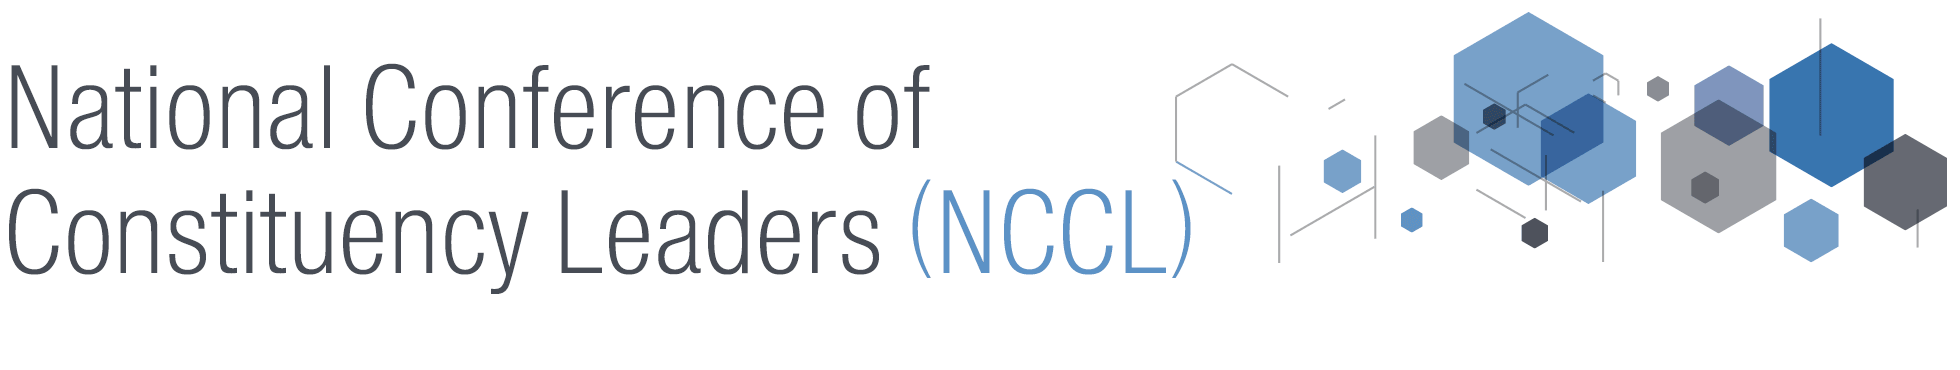 National Conference of Constituency Leaders (NCCL)